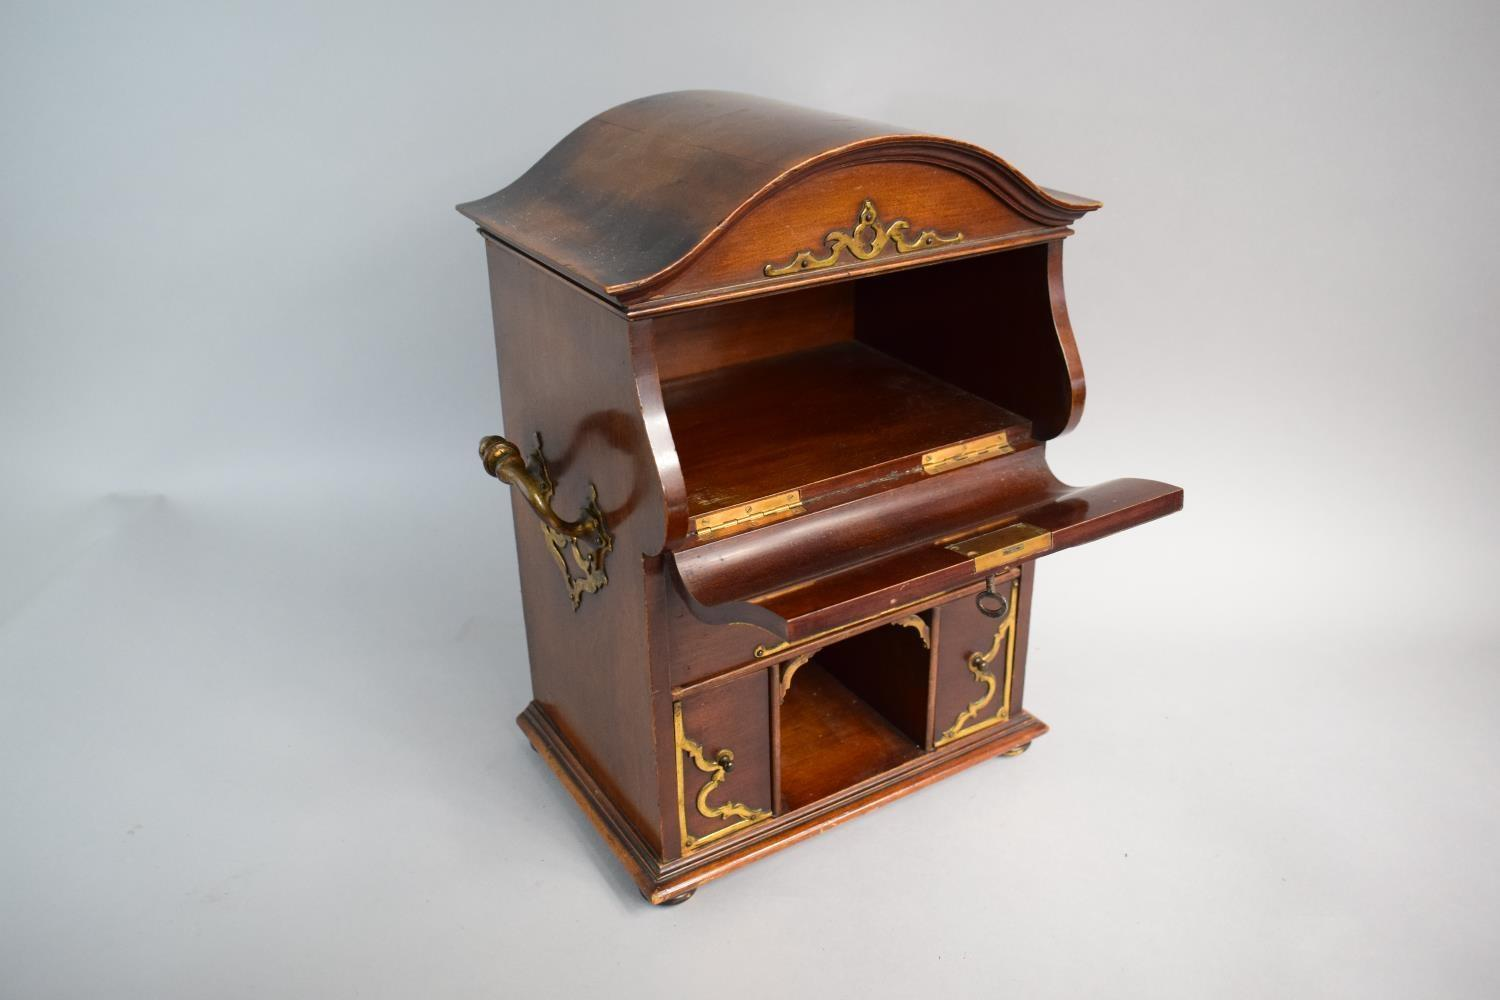 Lot 24 - A French Ormolu Mounted Mahogany Stationery Cabinet with Side Carrying Handles. Hinged Pull Front to